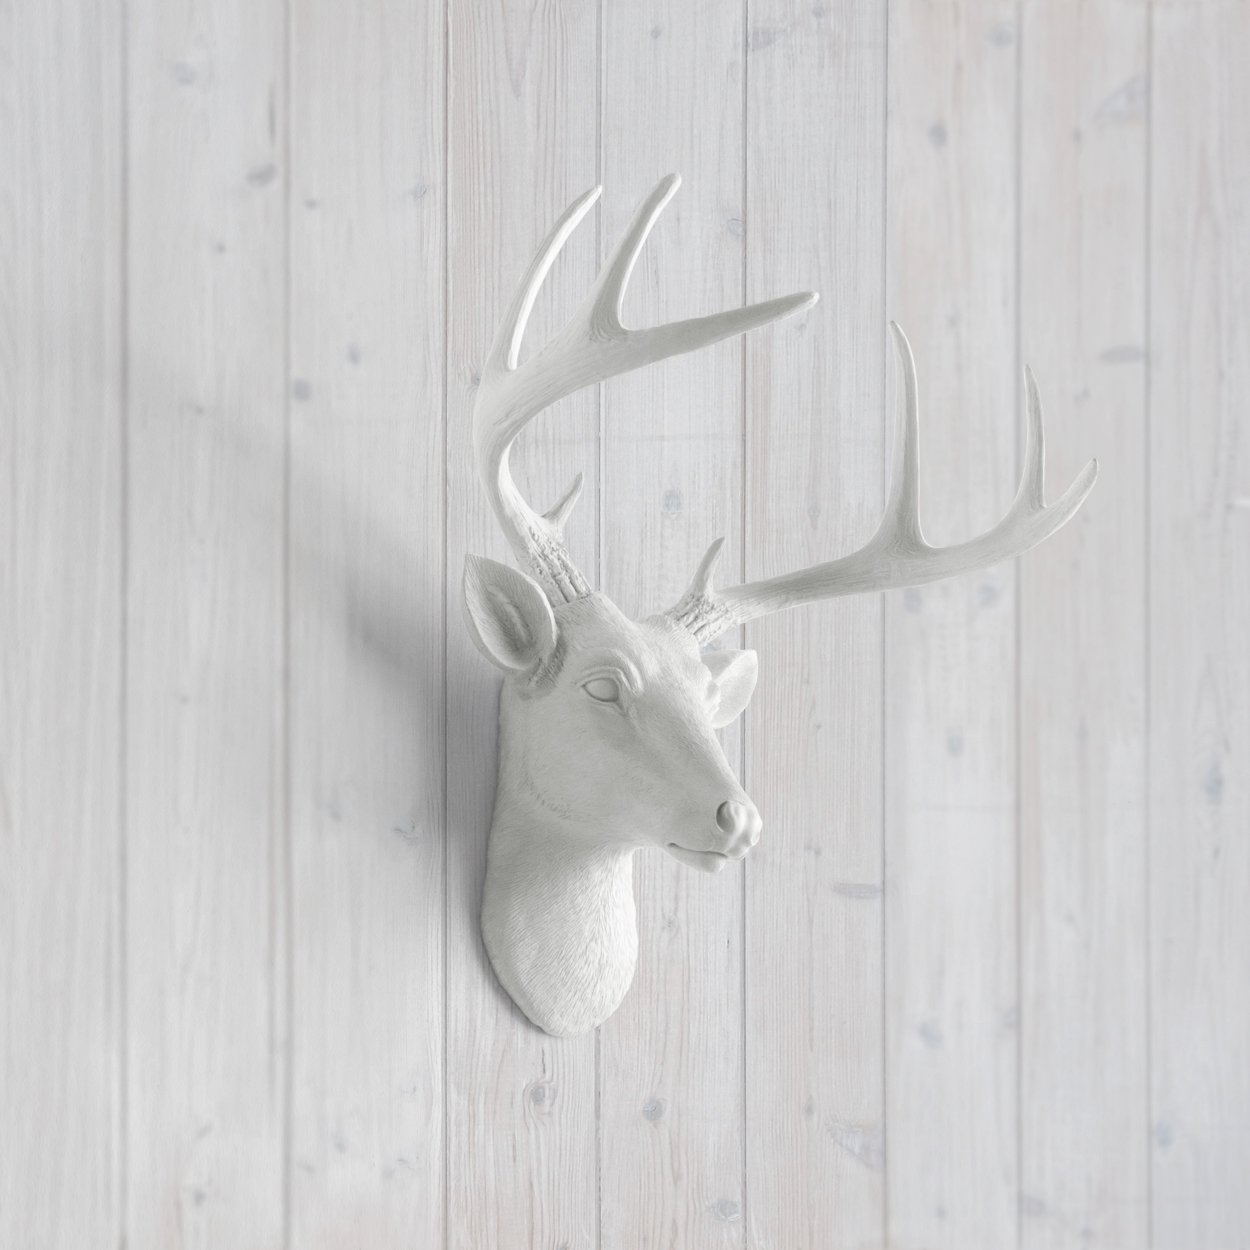 luxury ideas fake deer. Amazon com  Mini Deer by Wall Charmers White Faux Head Mount Bust Fake Animal Resin Taxidermy Sculpture Stag Buck Antler Fauxidermy Mounted Replica Decor